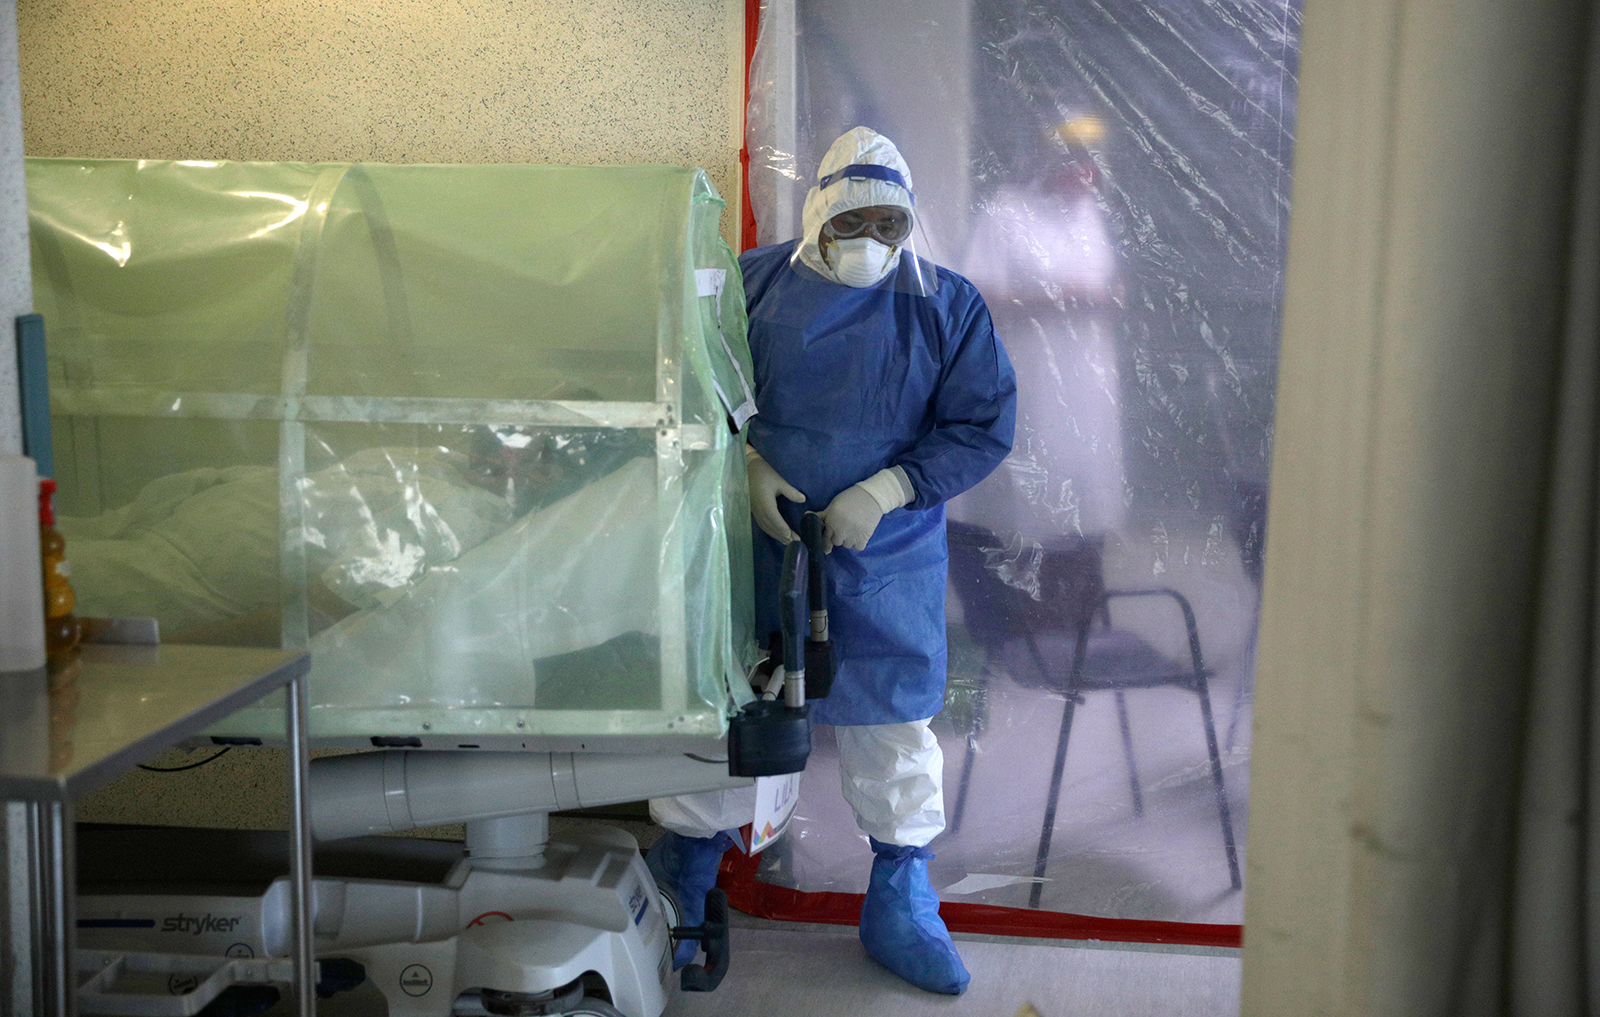 A worker wears personal protective equipment (PPE) to treat a patient infected with Covid-19 in Mexico City, on August 8.